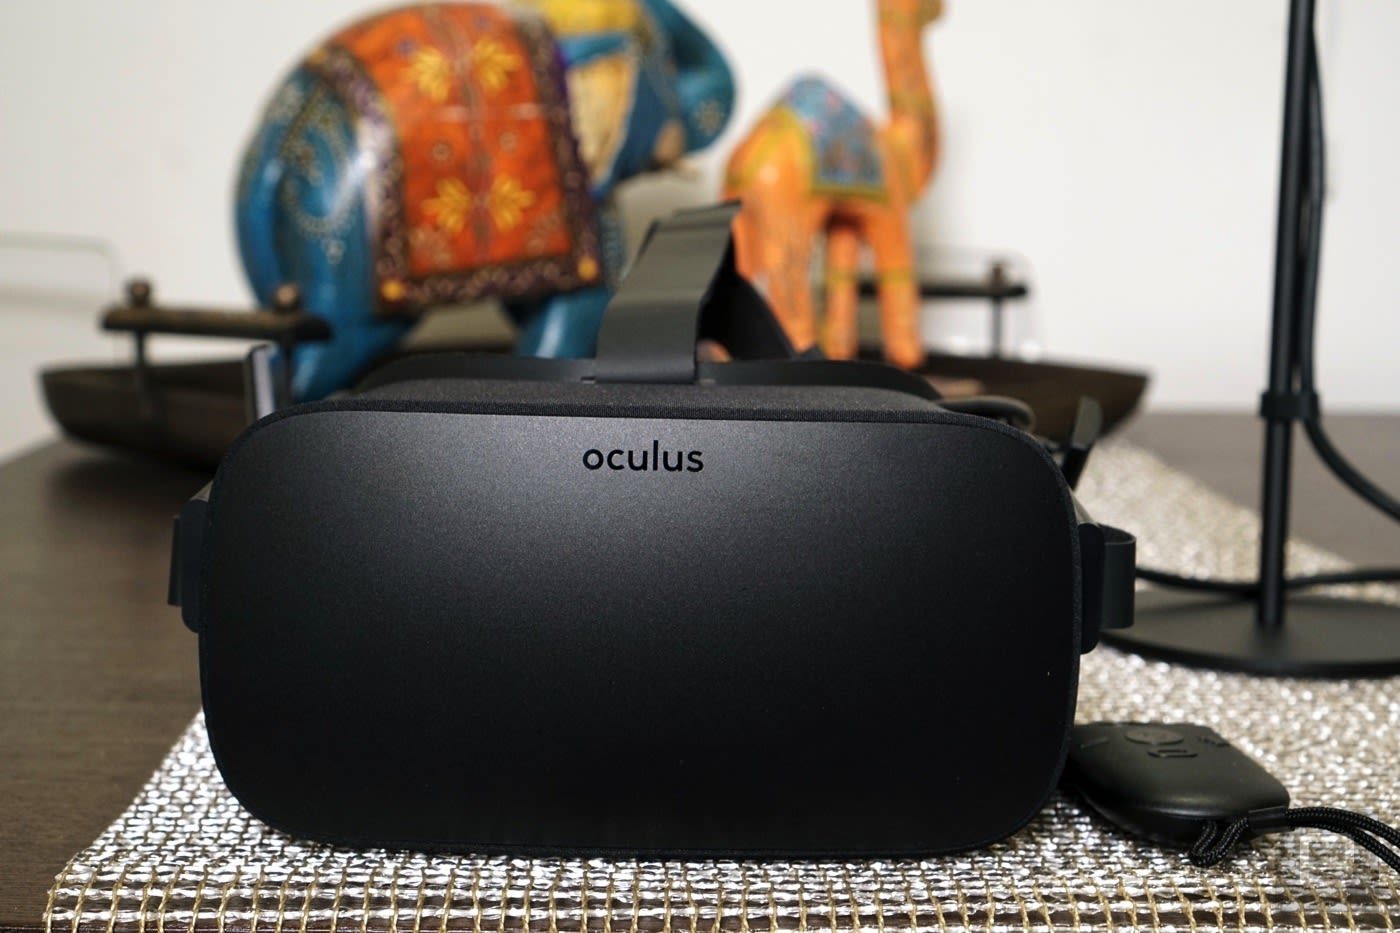 The Vive Focus 3 is the best standalone VR headset and no, you should not buy it | DeviceDaily.com